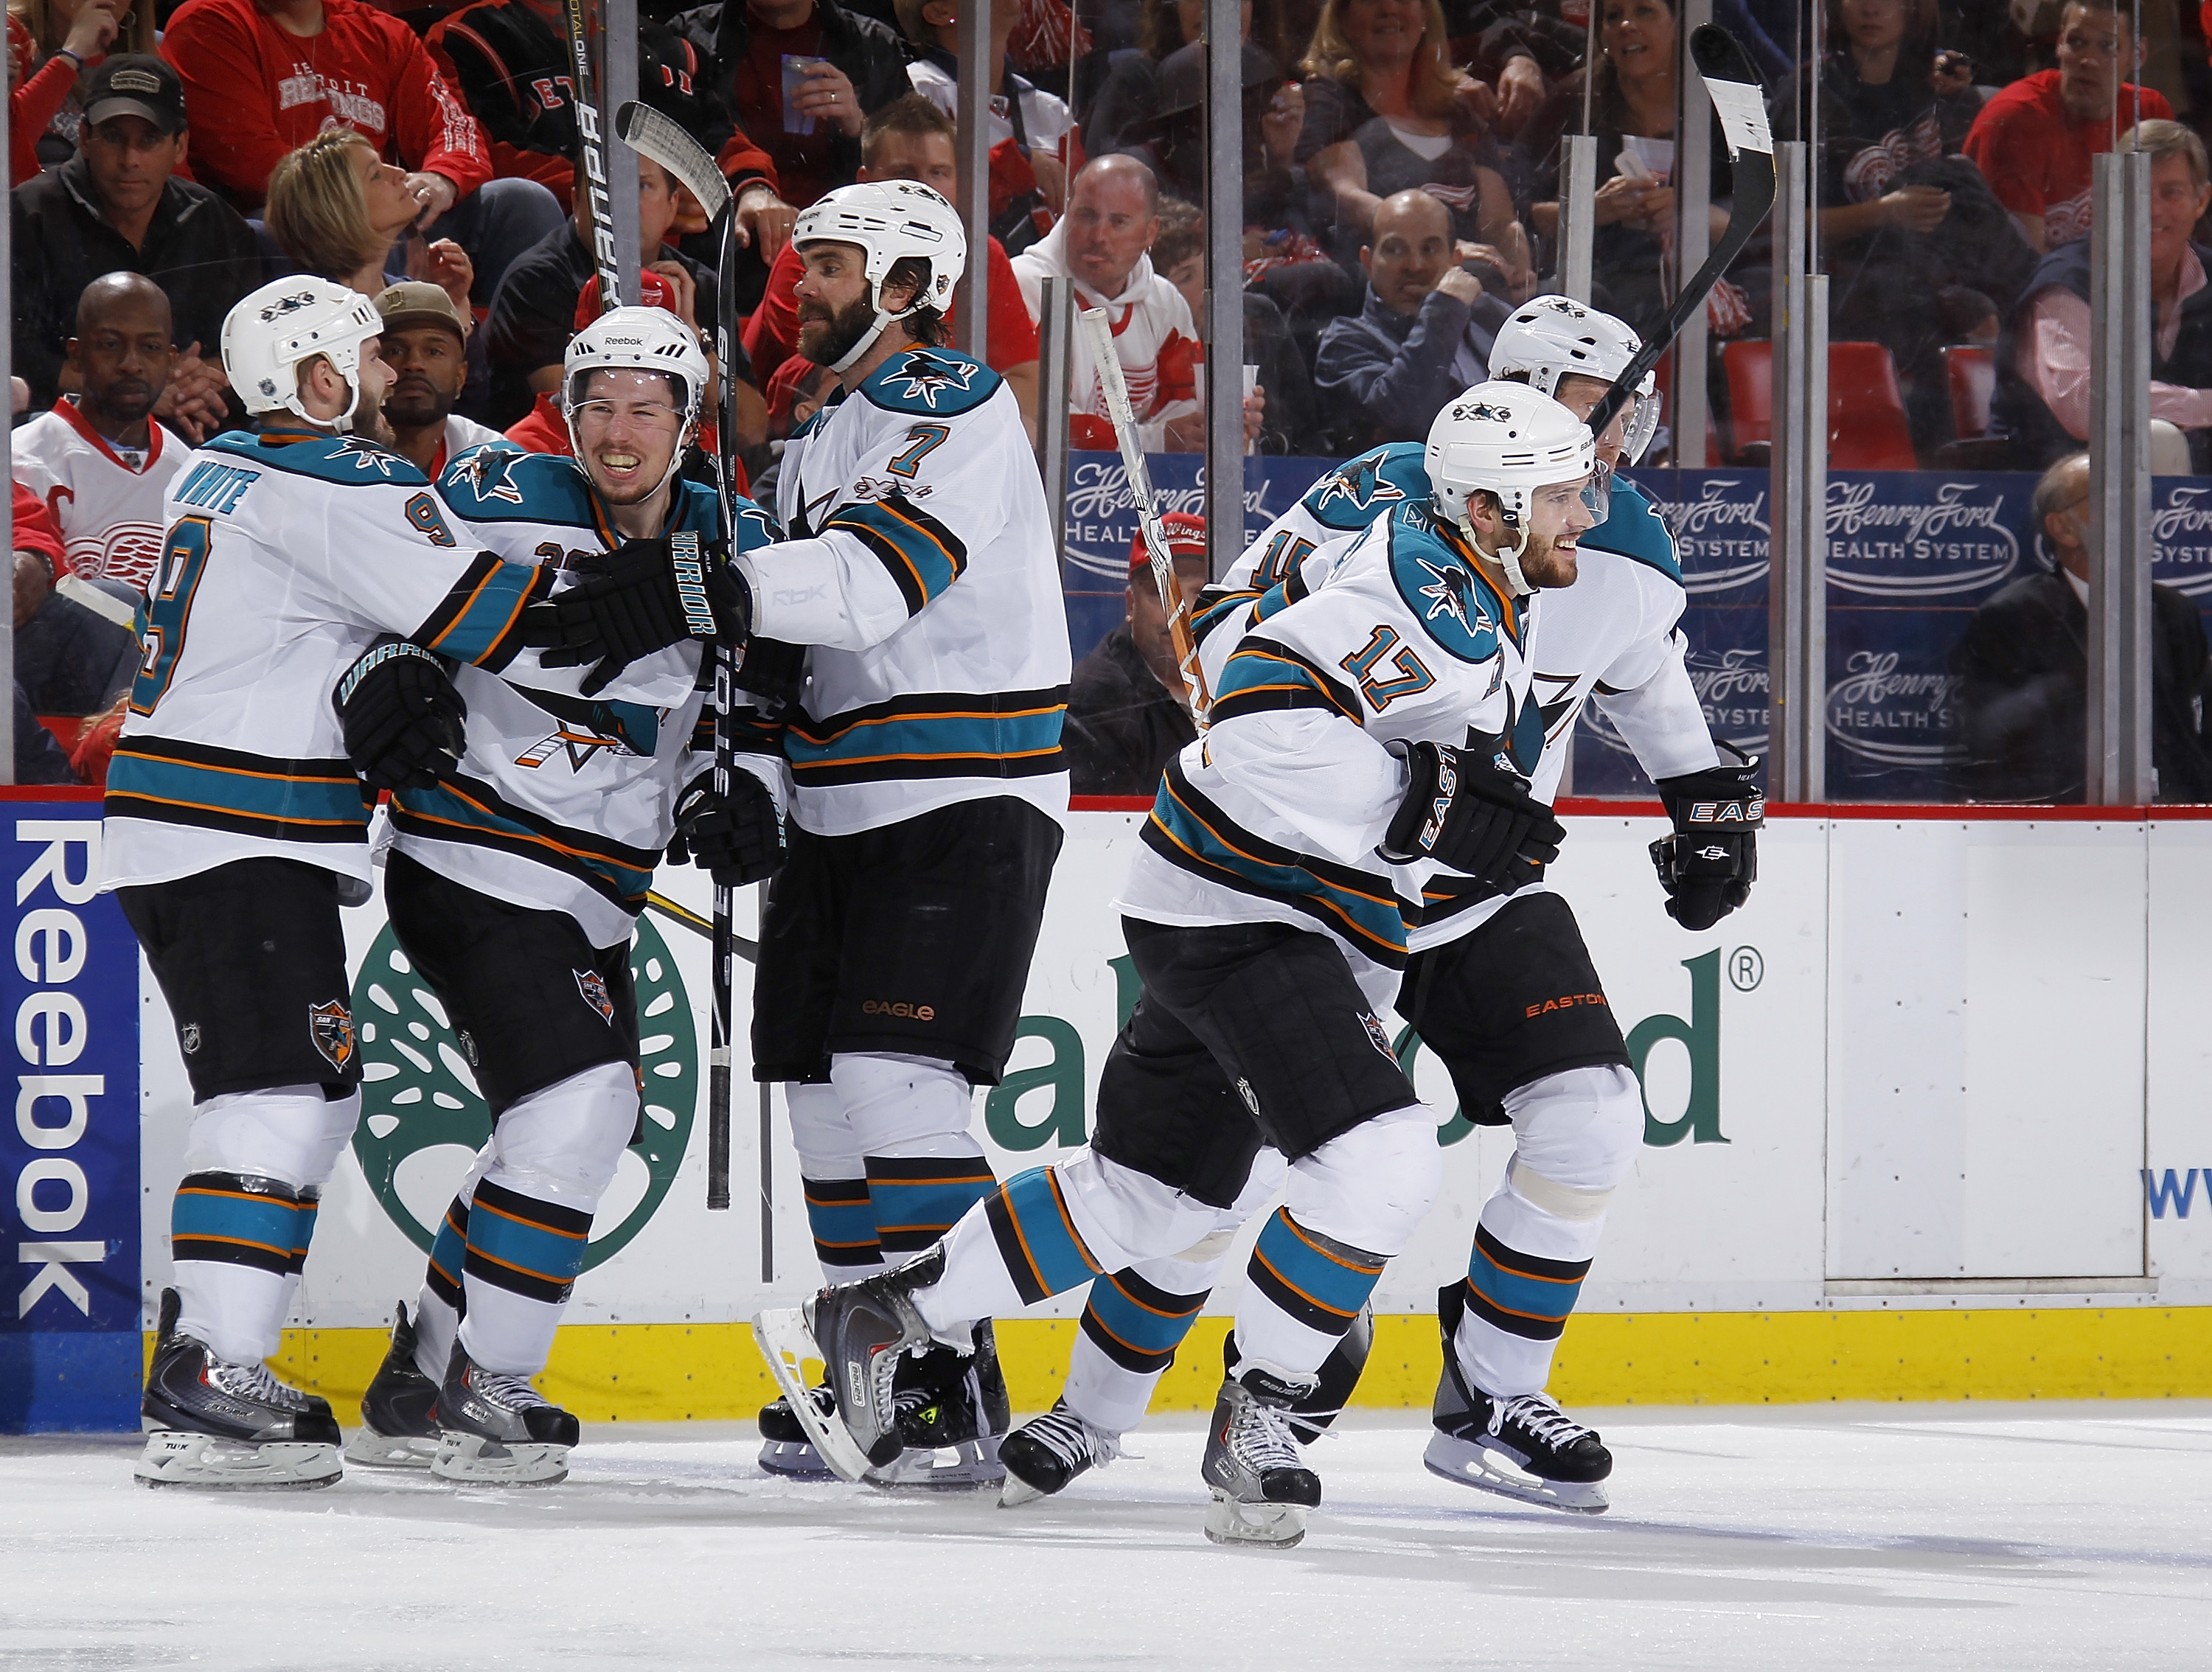 DETROIT - MAY 10: Logan Couture #39 of the San Jose Sharks scores a third period goal and celebrates with teammates Torrey Mitchell #17, Niclas Wallin #7, Ian White #9, and Dany Heatley #15 while playing against the Detroit Red Wings in Game Six of the We